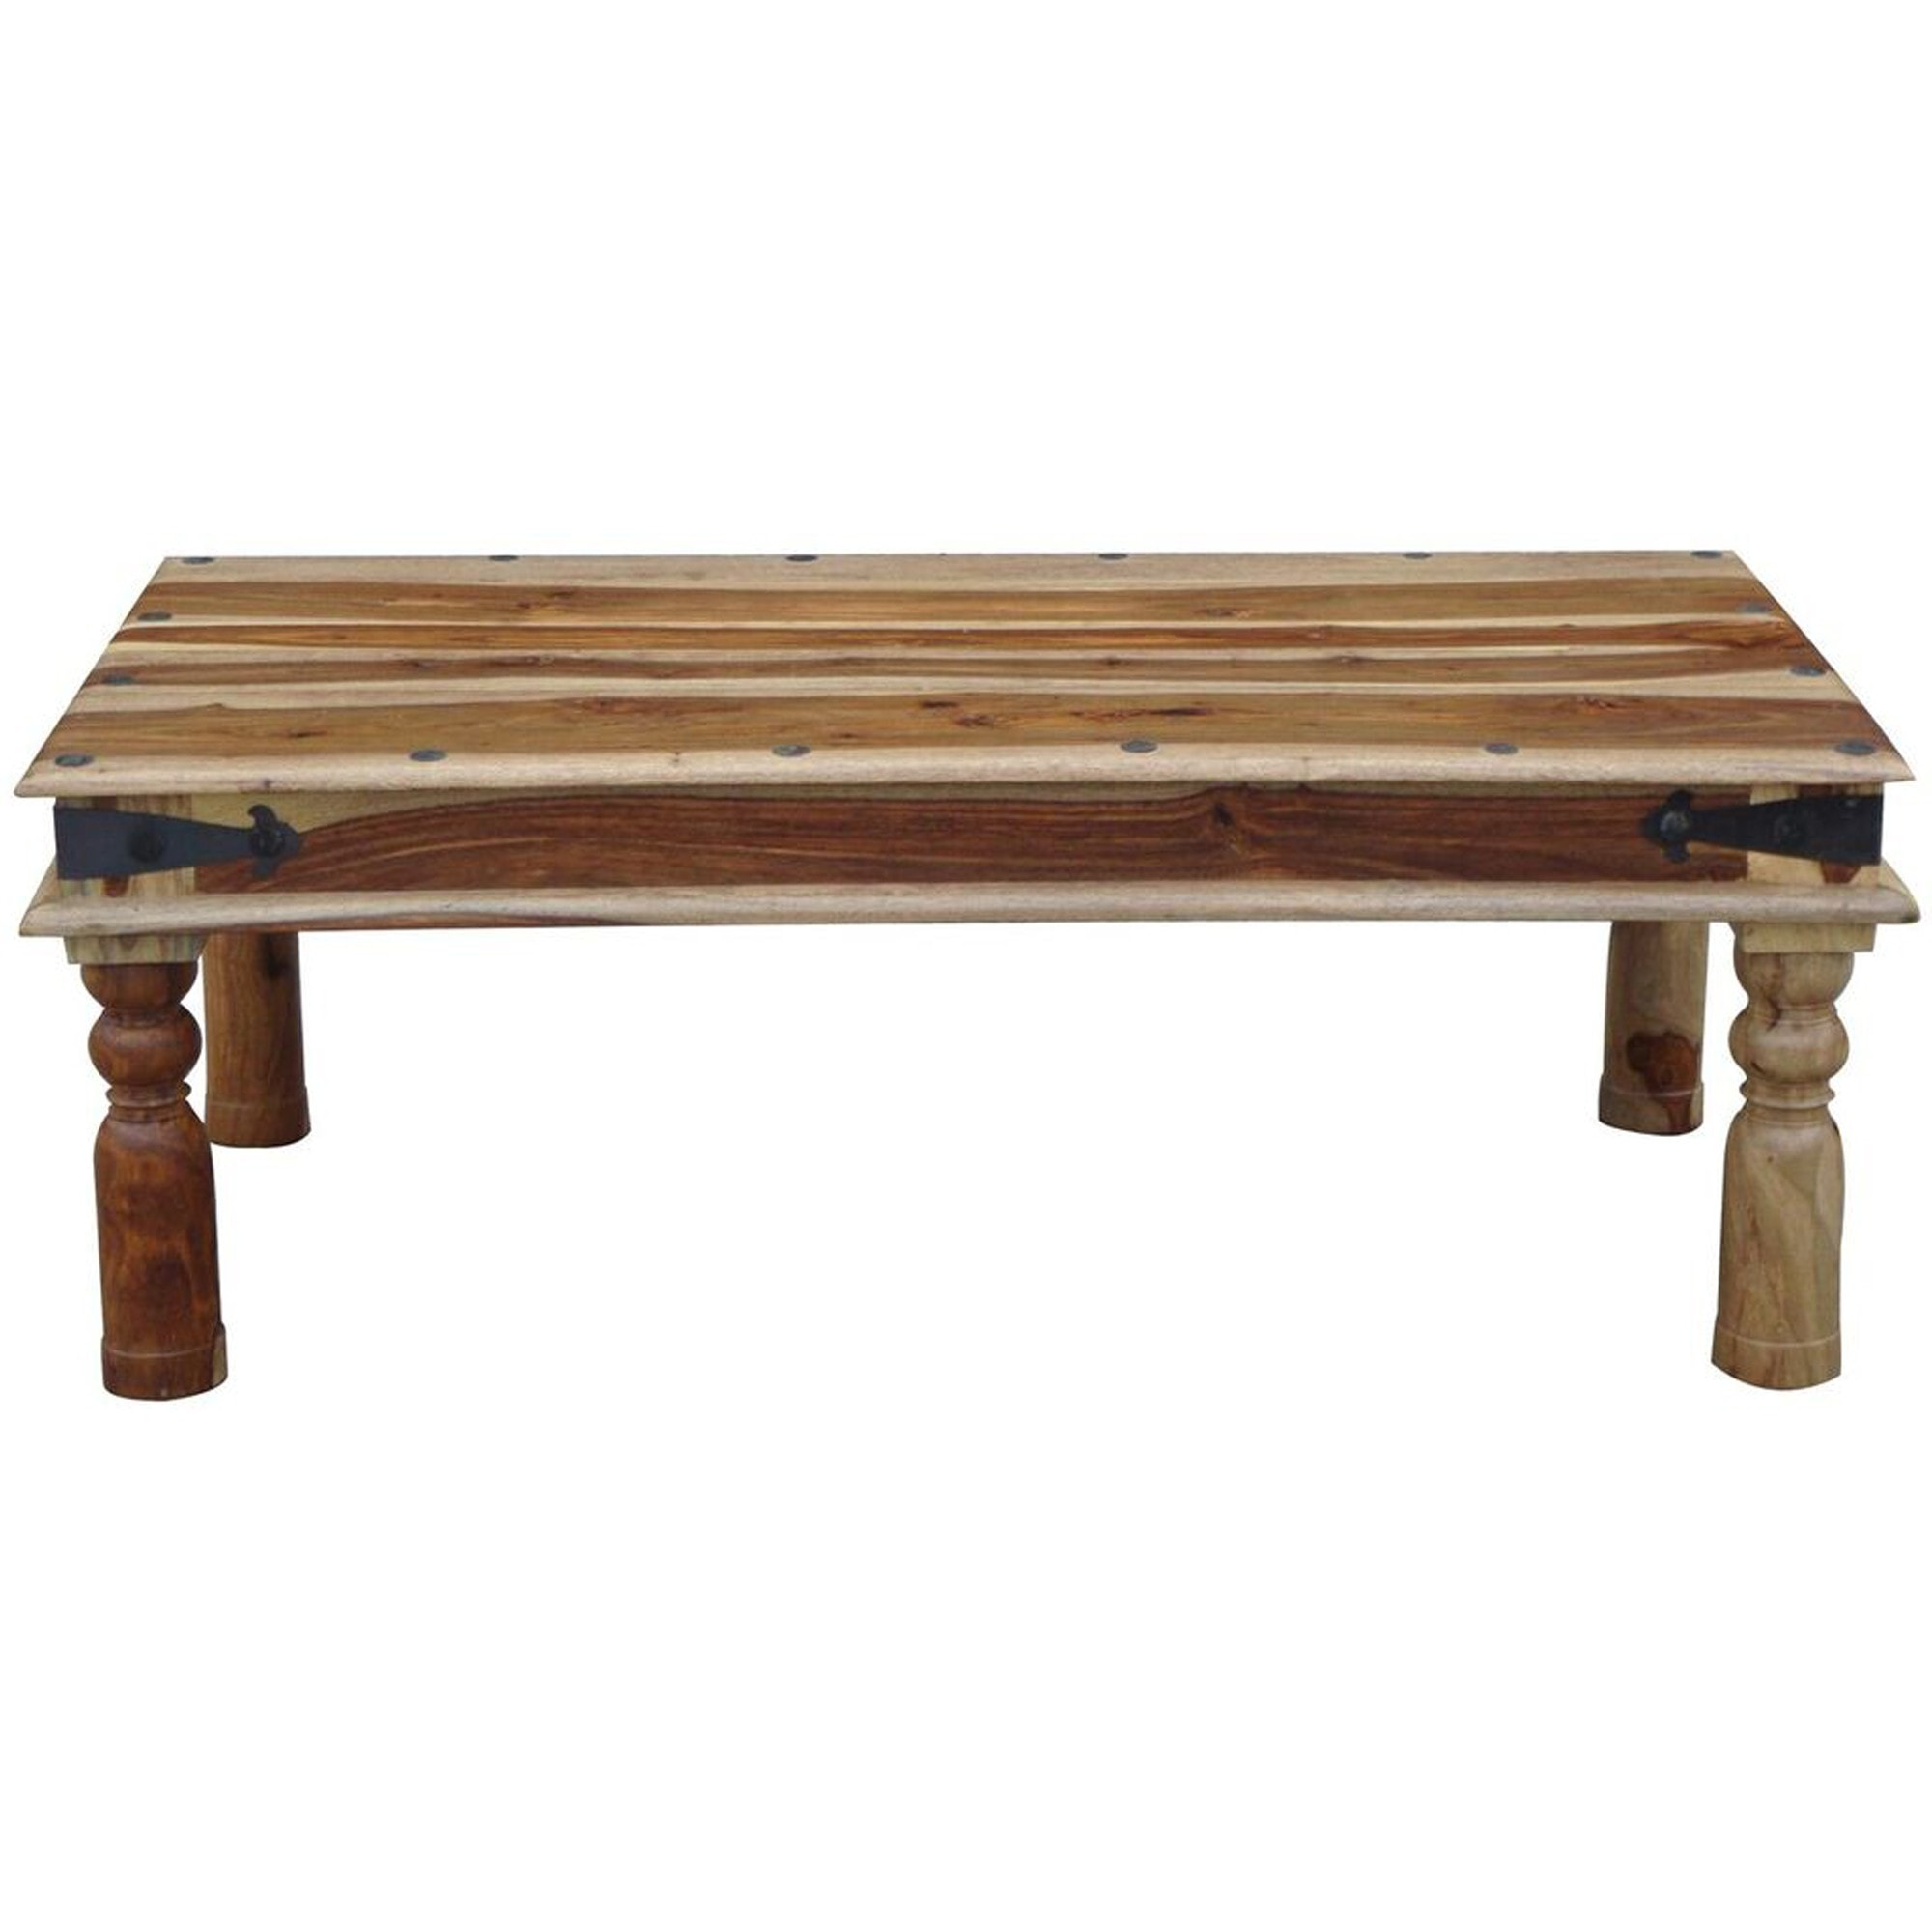 Jali Large Coffee Table Wooden Coffee Tables Indian Furniture